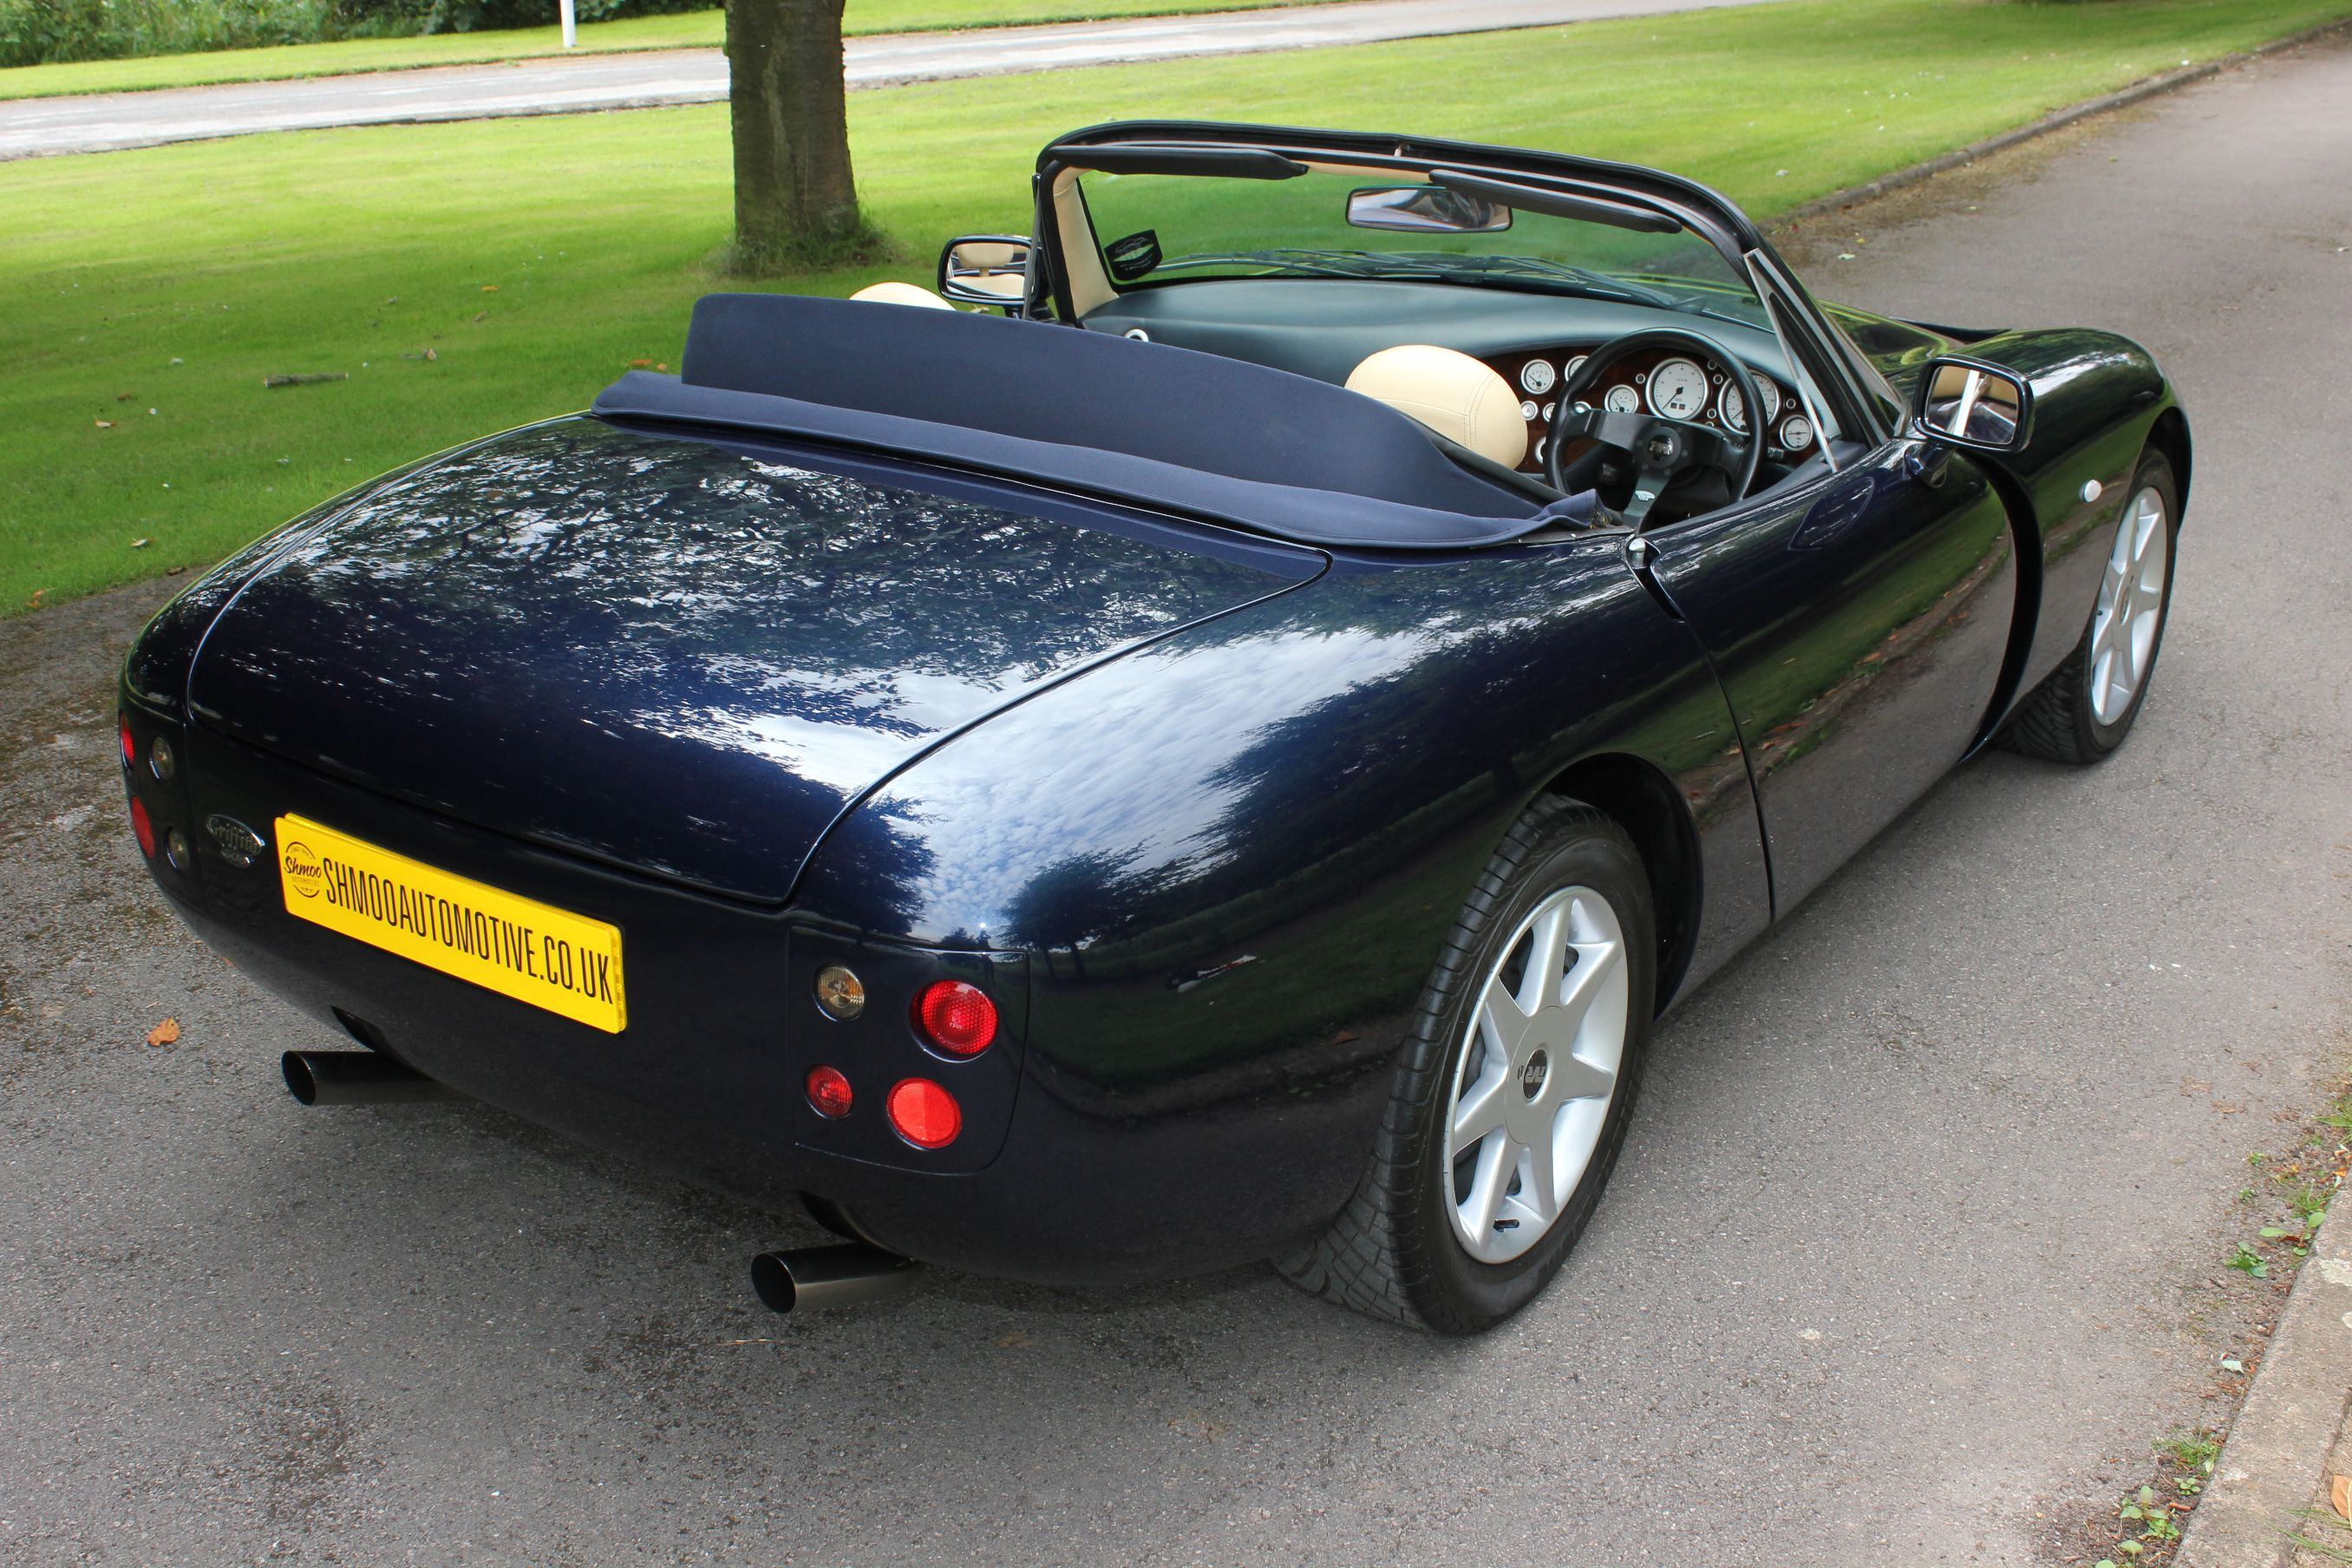 tvr griffith 500 se car no 4 just in video below shmoo automotive. Black Bedroom Furniture Sets. Home Design Ideas